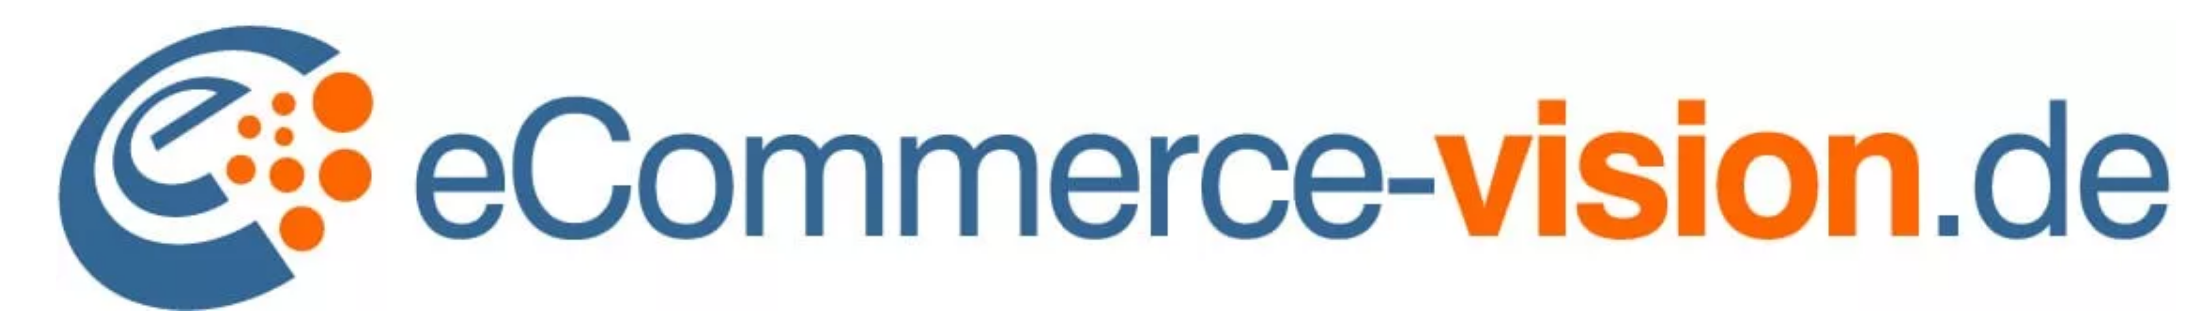 e-Commerce Vision logo